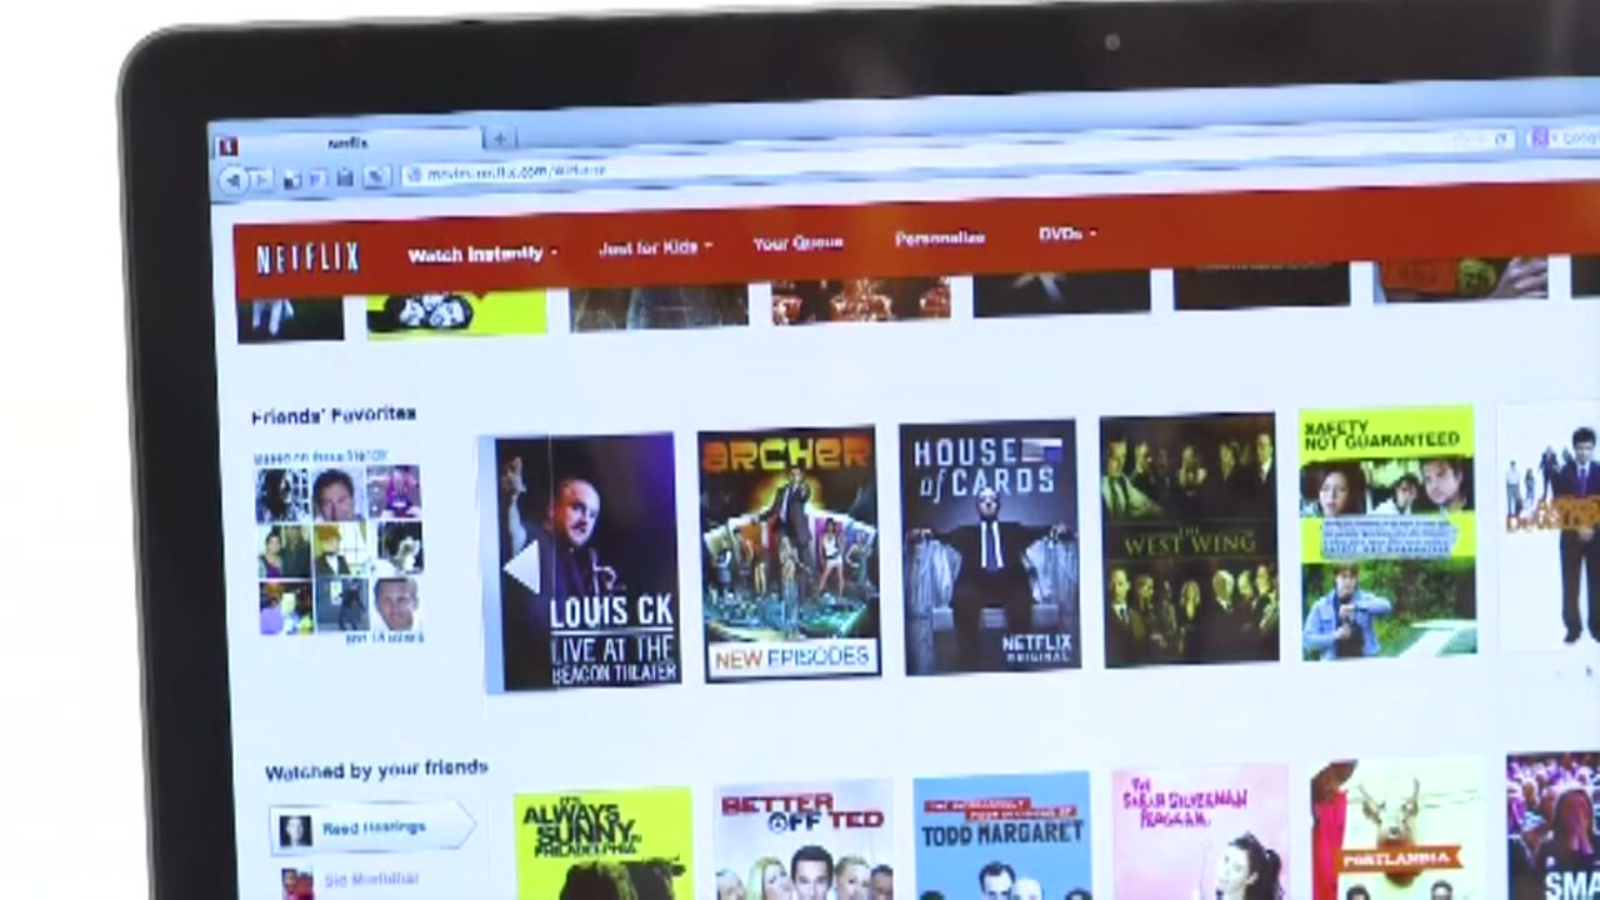 Beware of the Netflix email scam